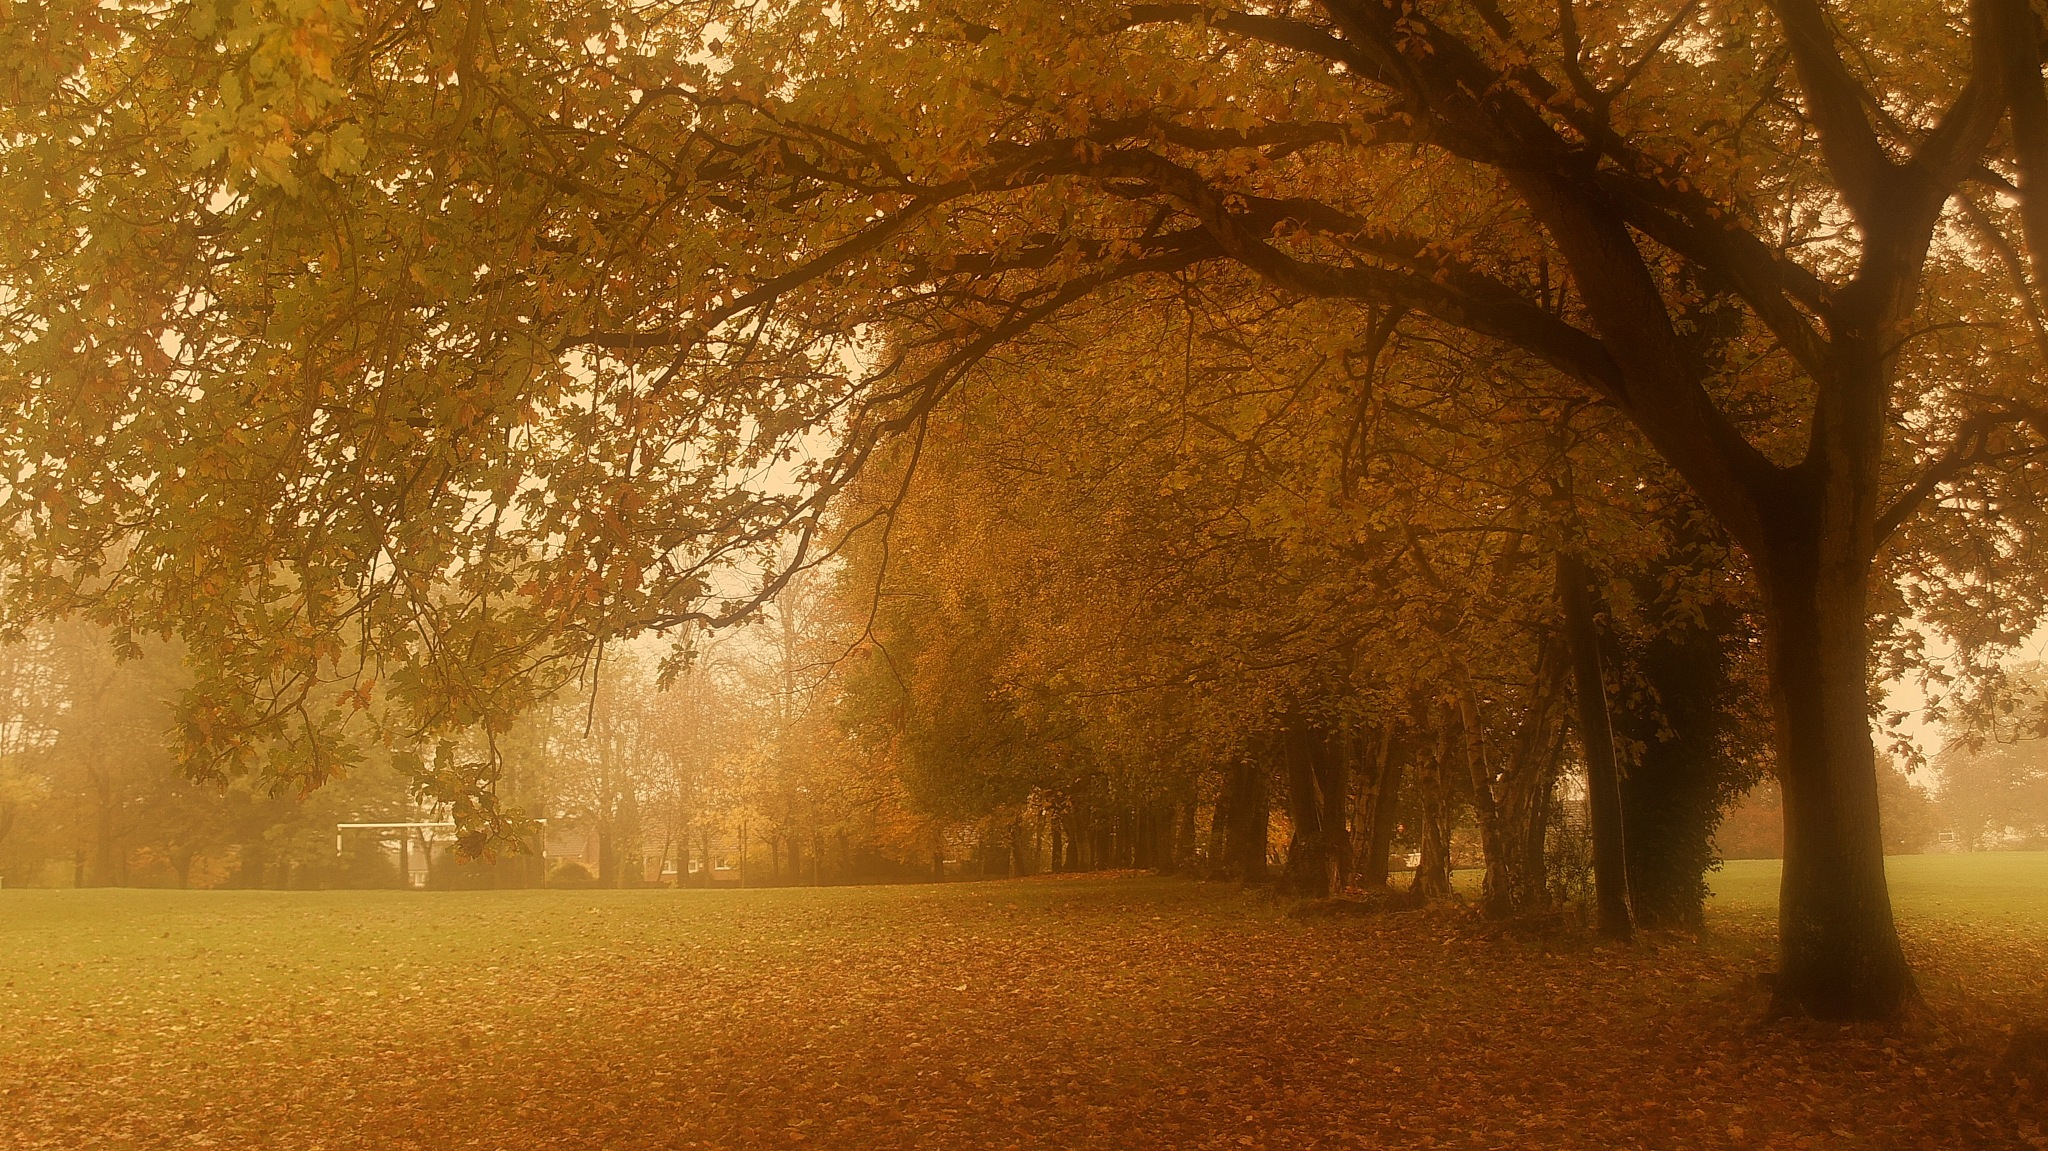 autumn in the air by navidqureshi